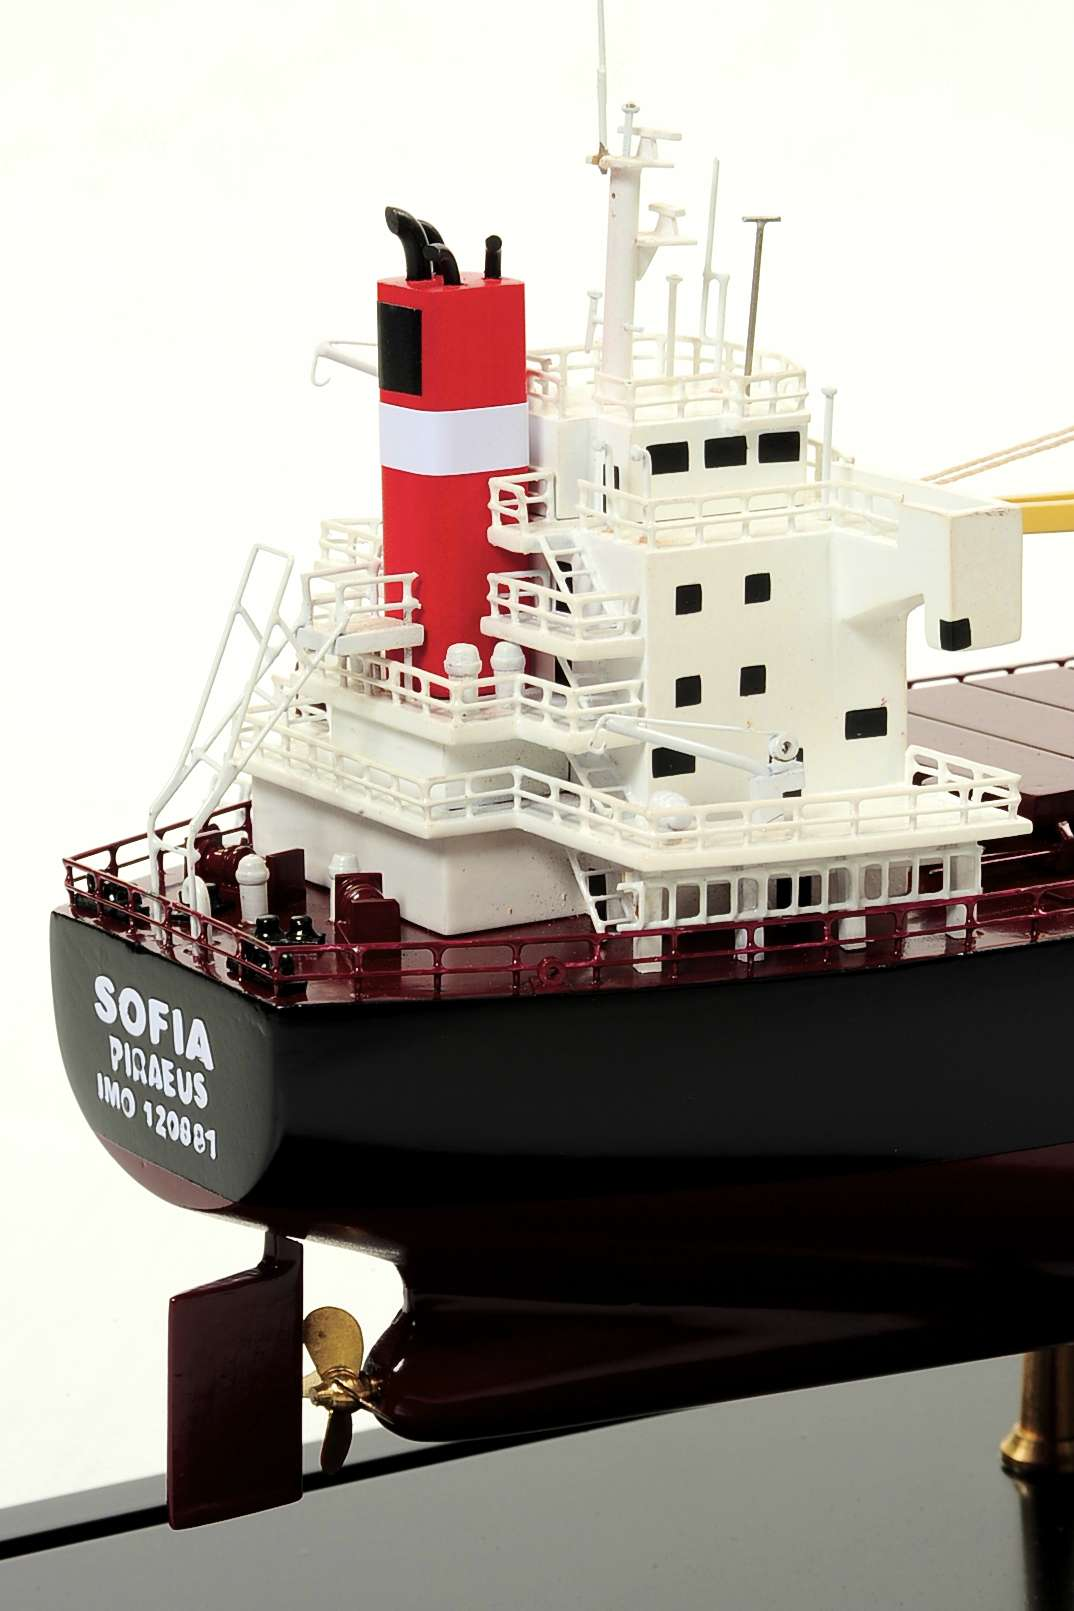 1450-4504-Bulk-Carrier-3-Model-Ship